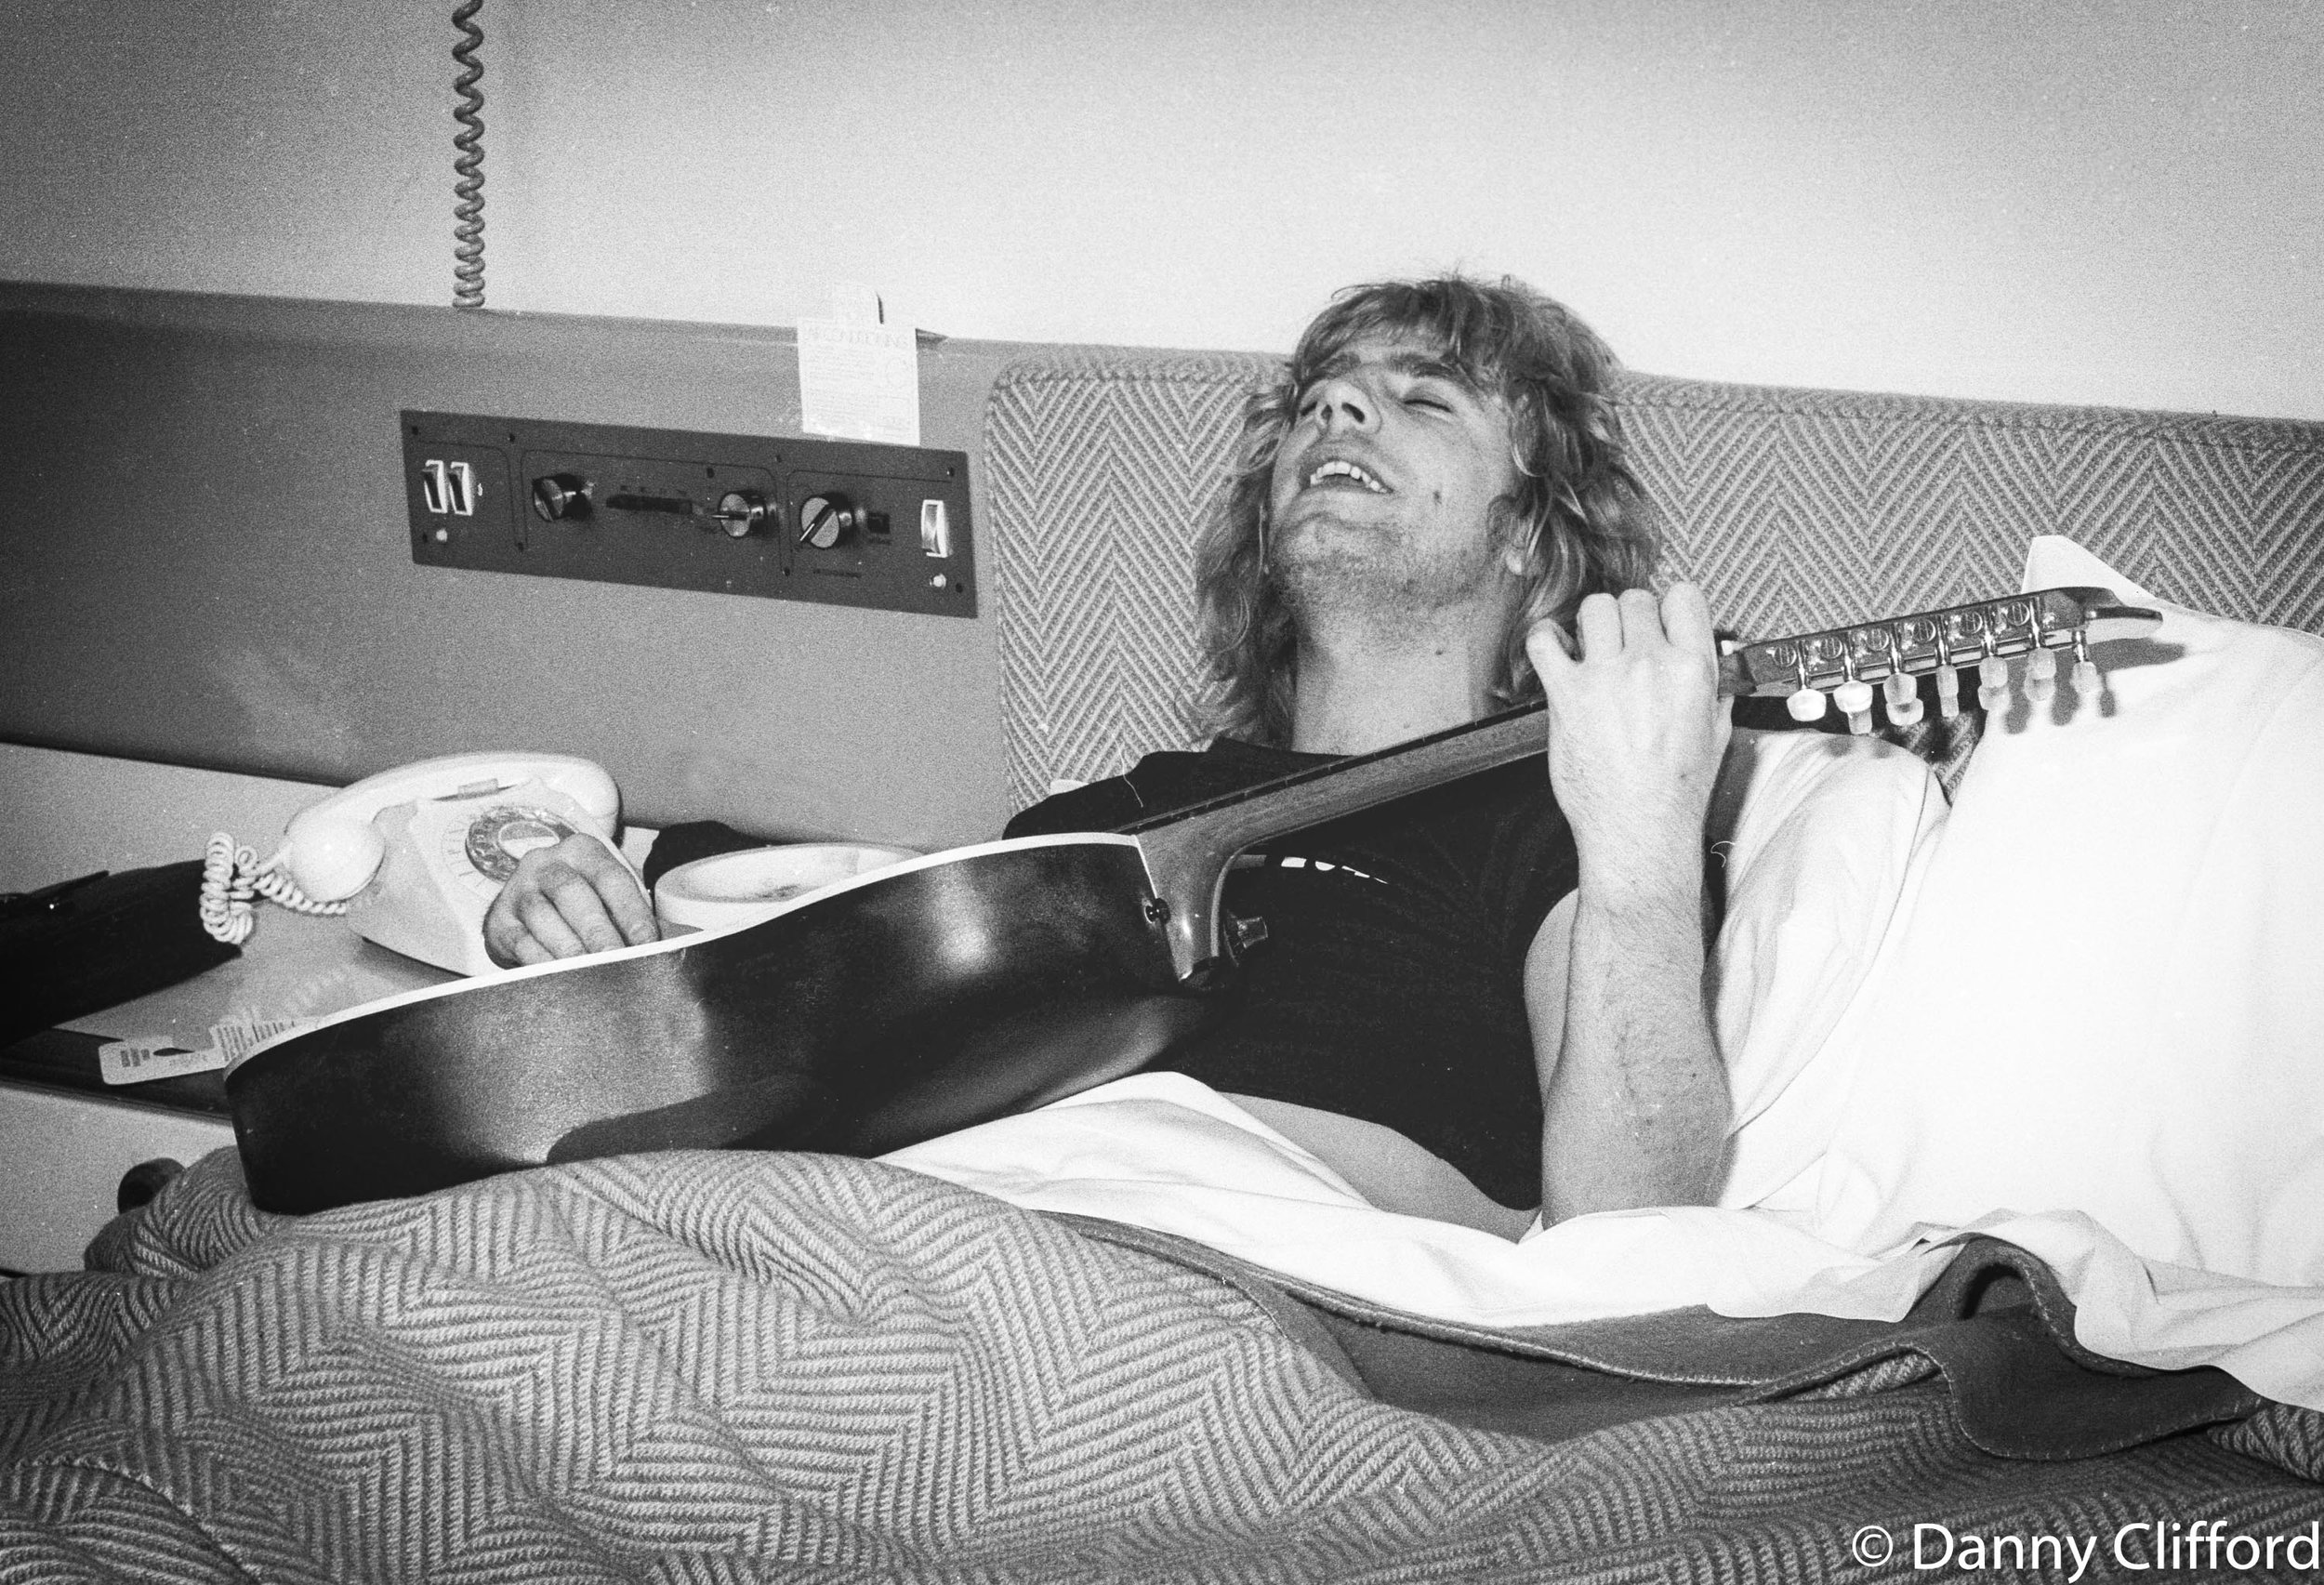 I had some of my best times on the road with Status Quo. Here is one inebriated Rick Parfitt in his hotel bed singing away. I think this was The Albany Hotel, Glasgow, Scotland.